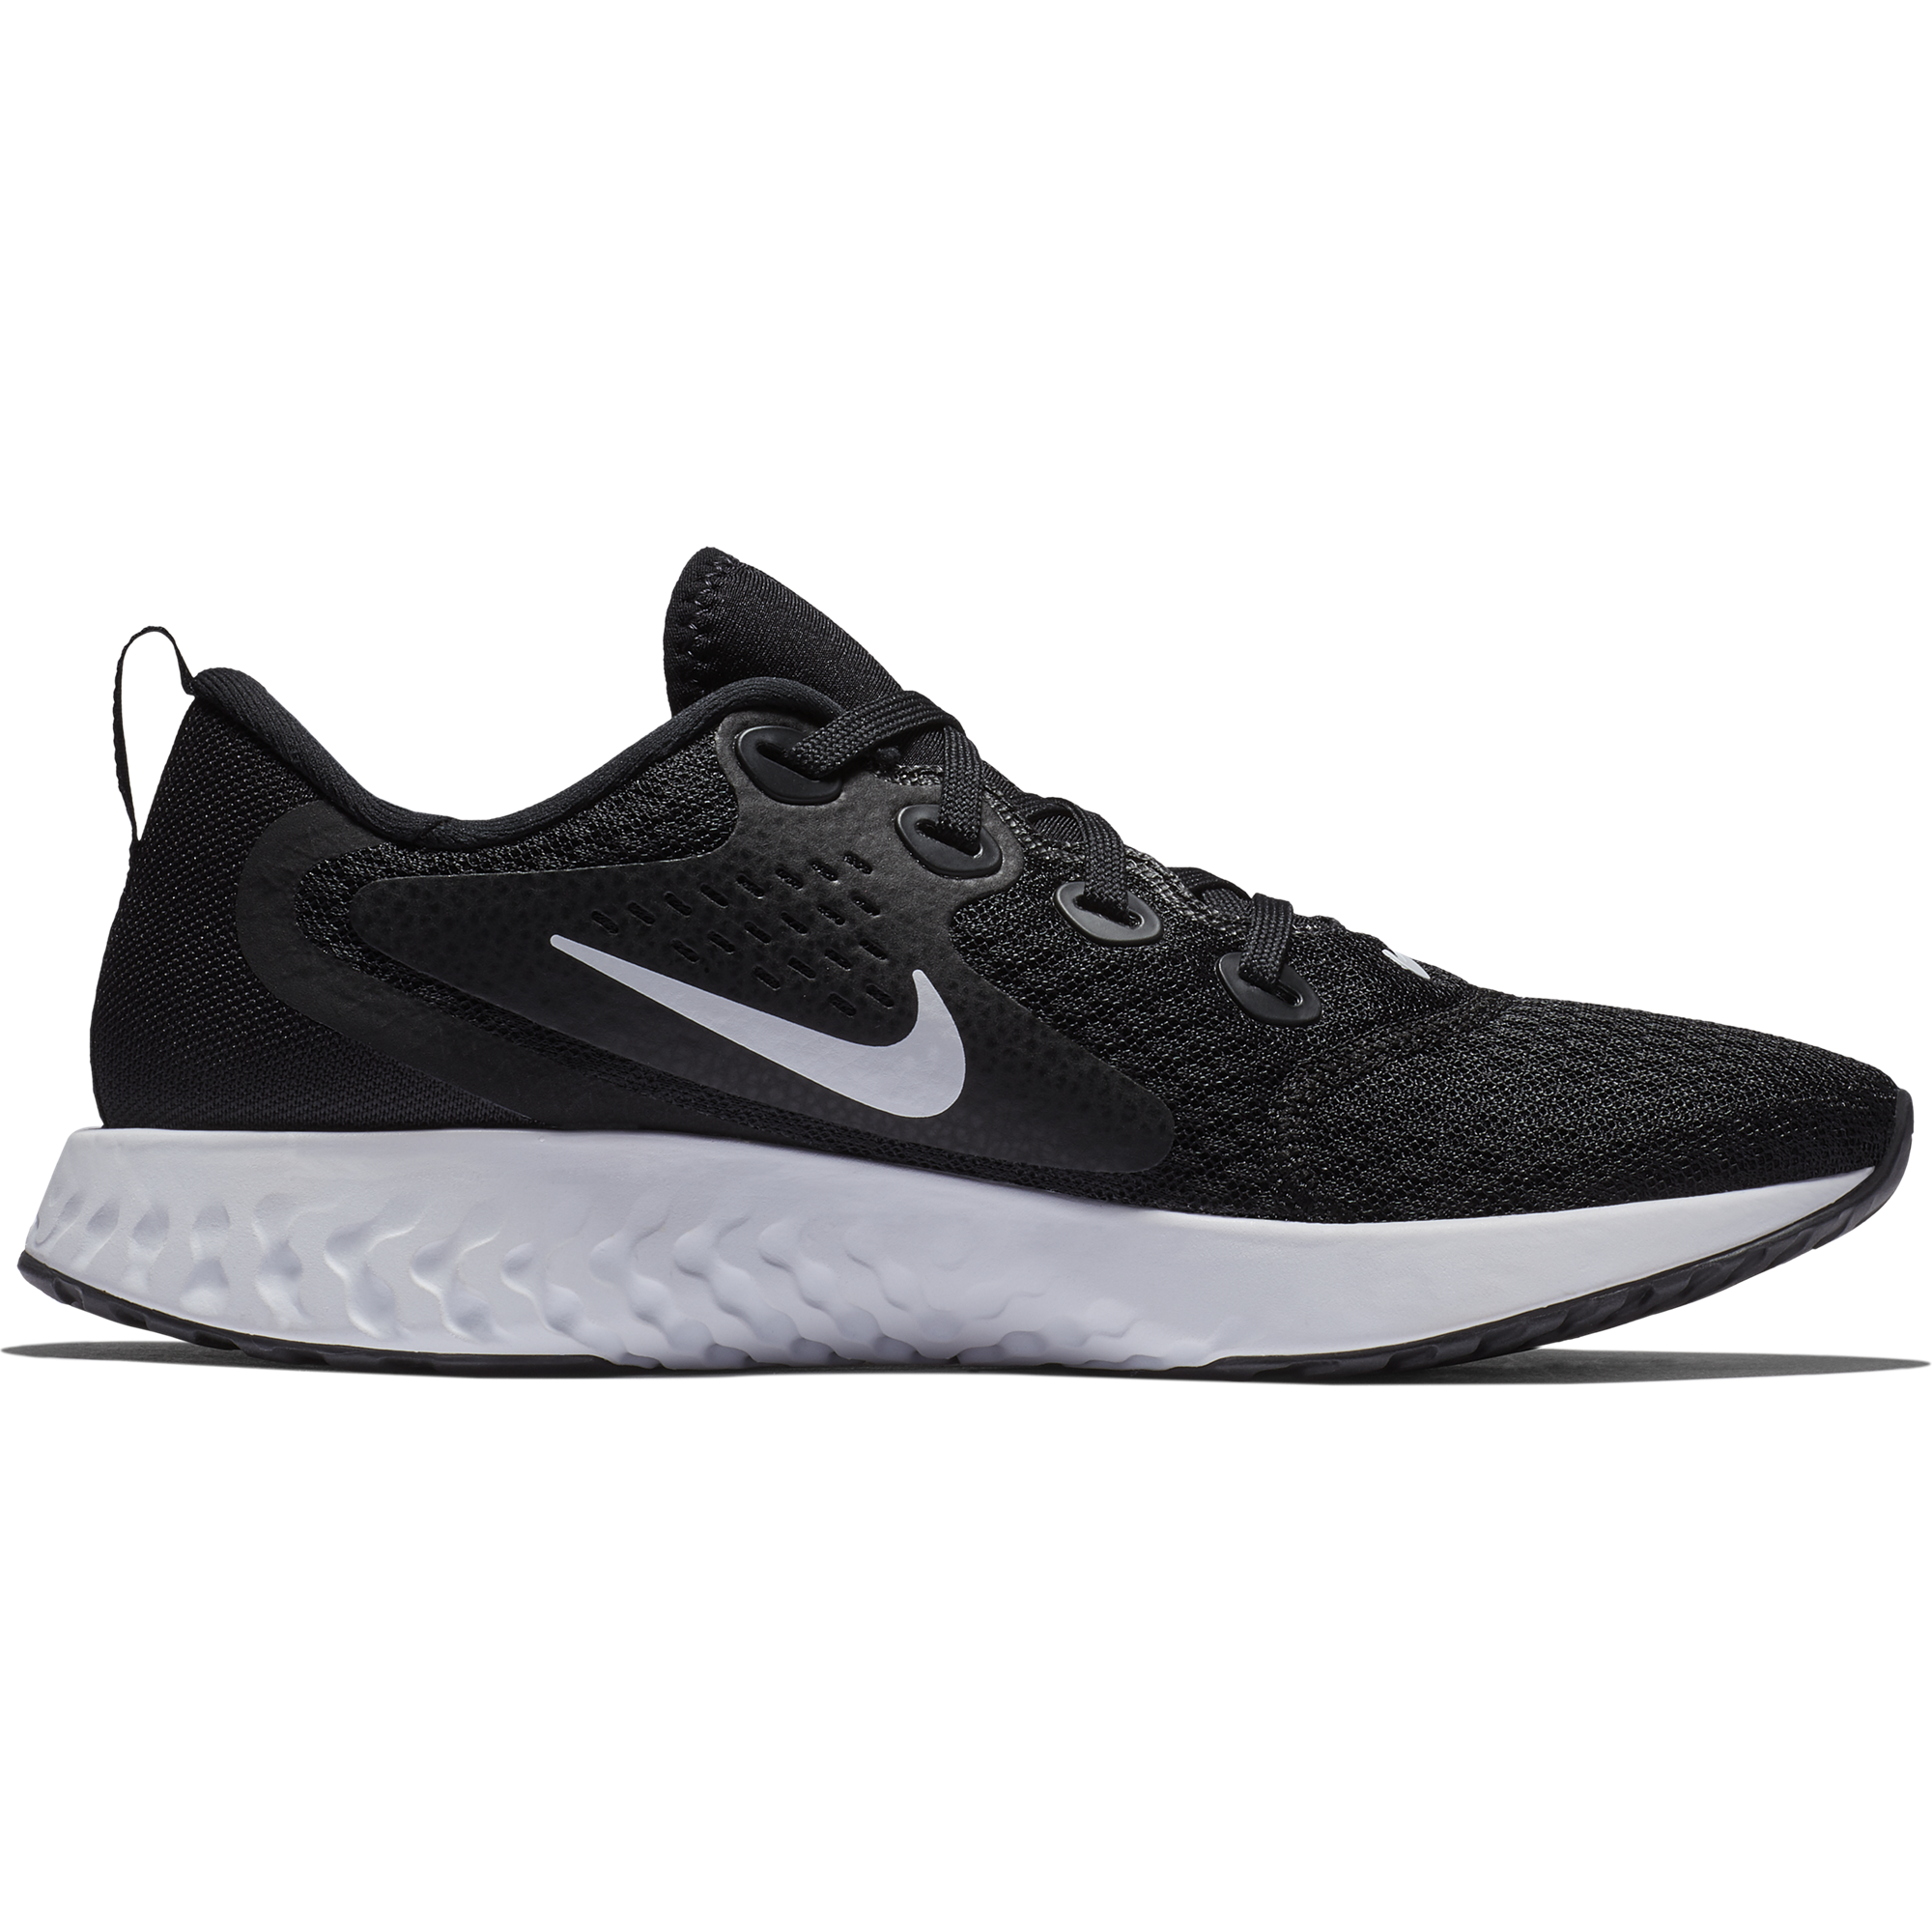 dd888ec75d6 Buy Nike Women Legend React Running Shoe